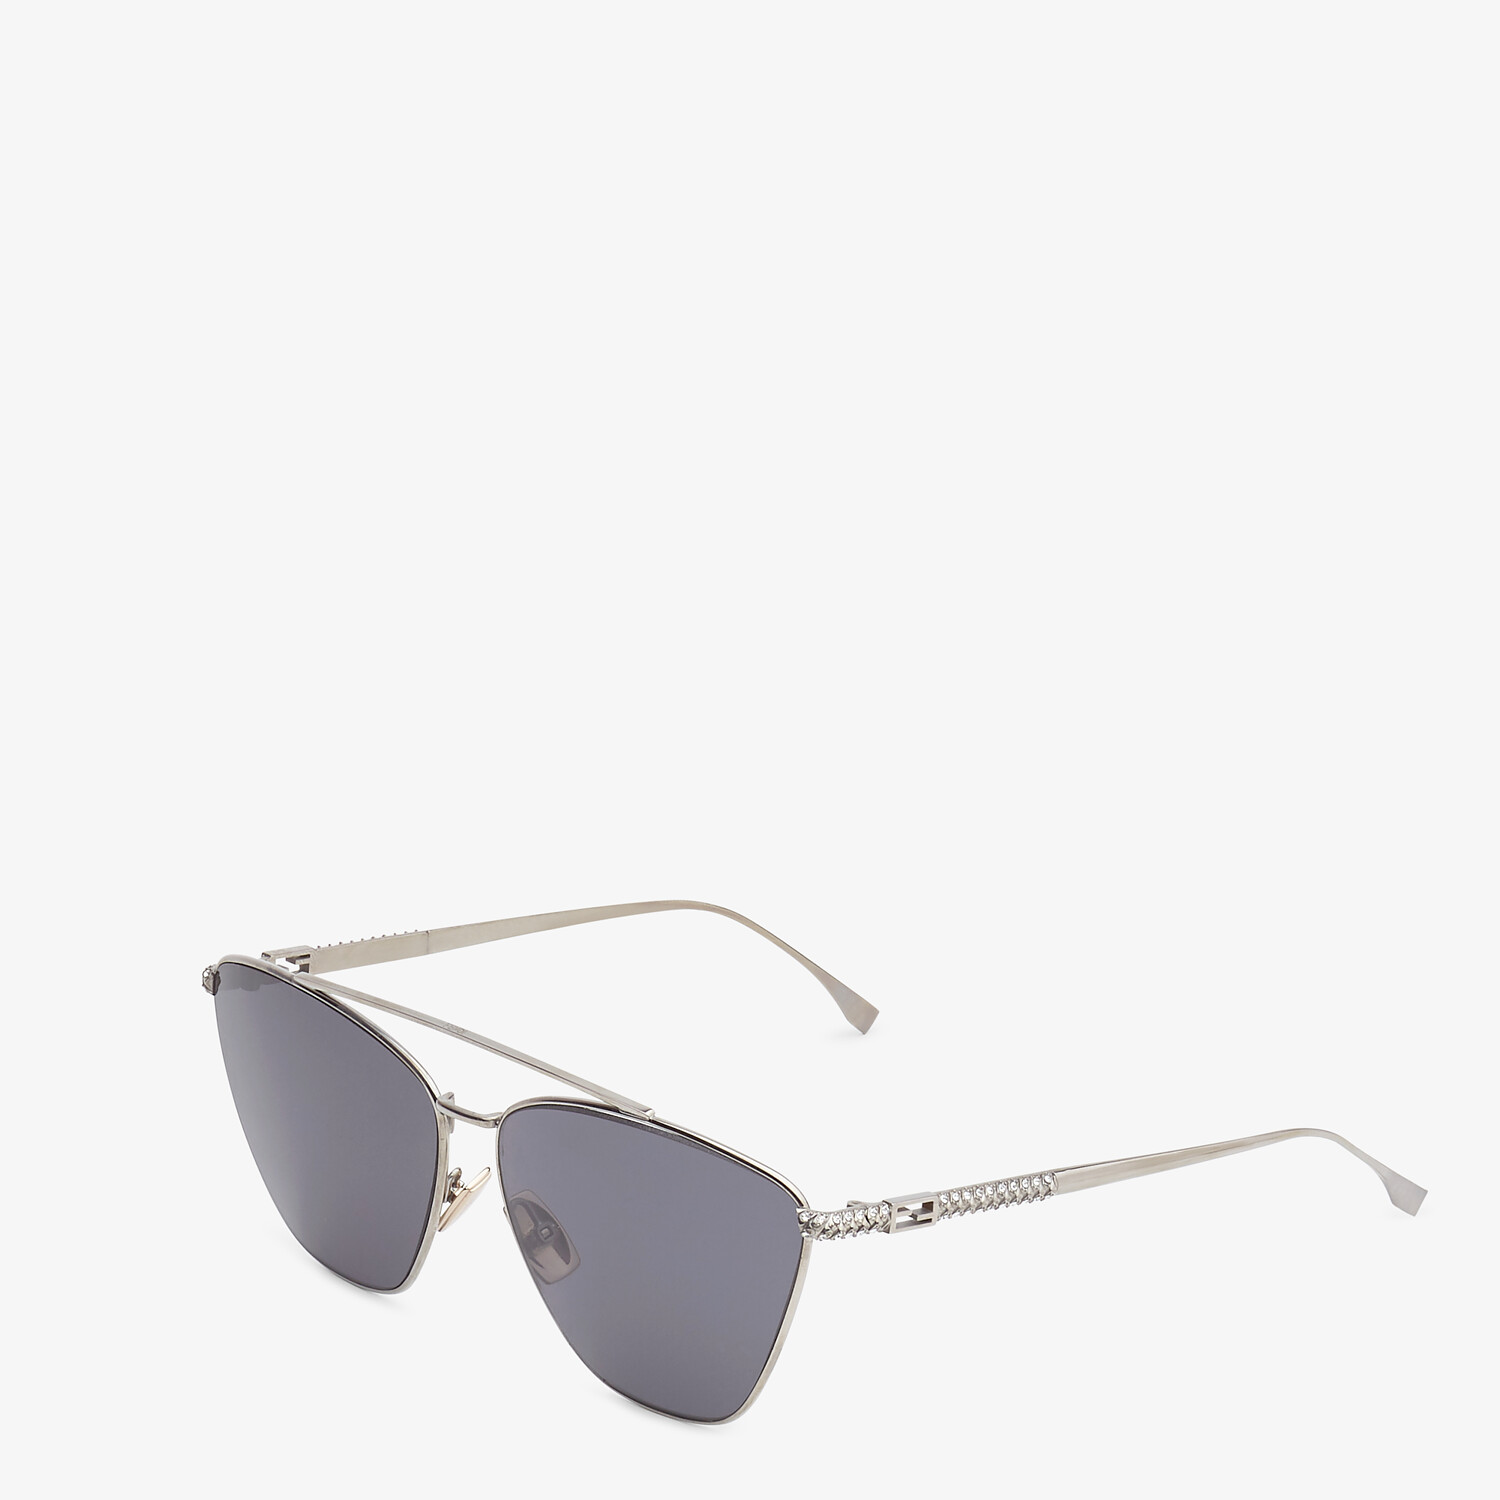 FENDI BAGUETTE - Ruthenium-colored sunglasses - view 2 detail